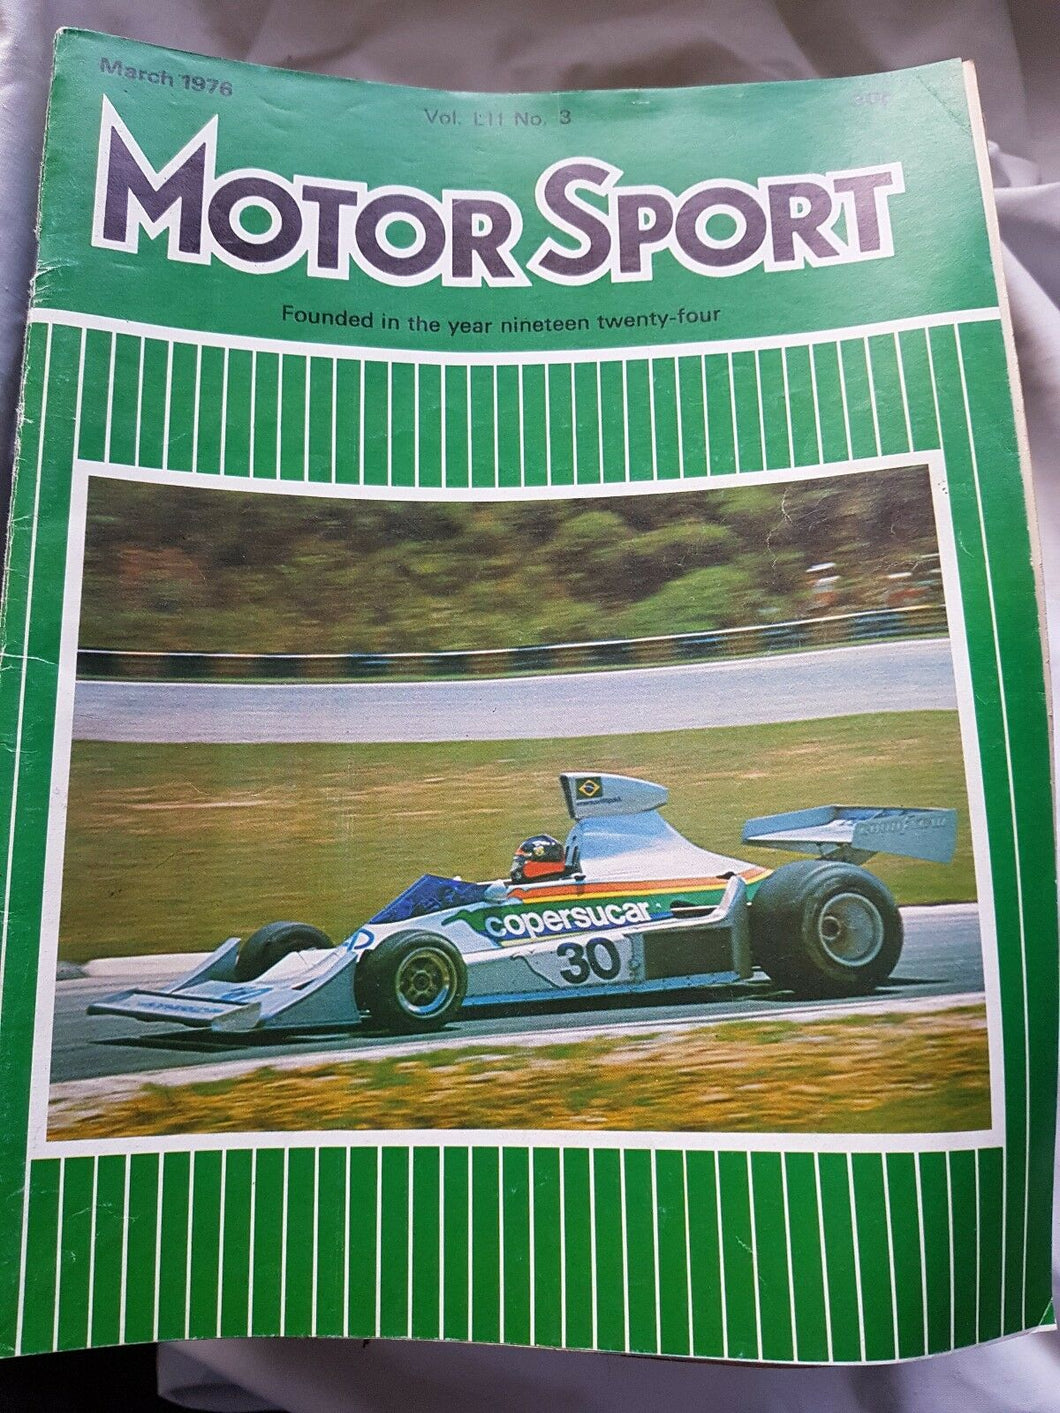 Motorsport March 1976 please see second image for contents